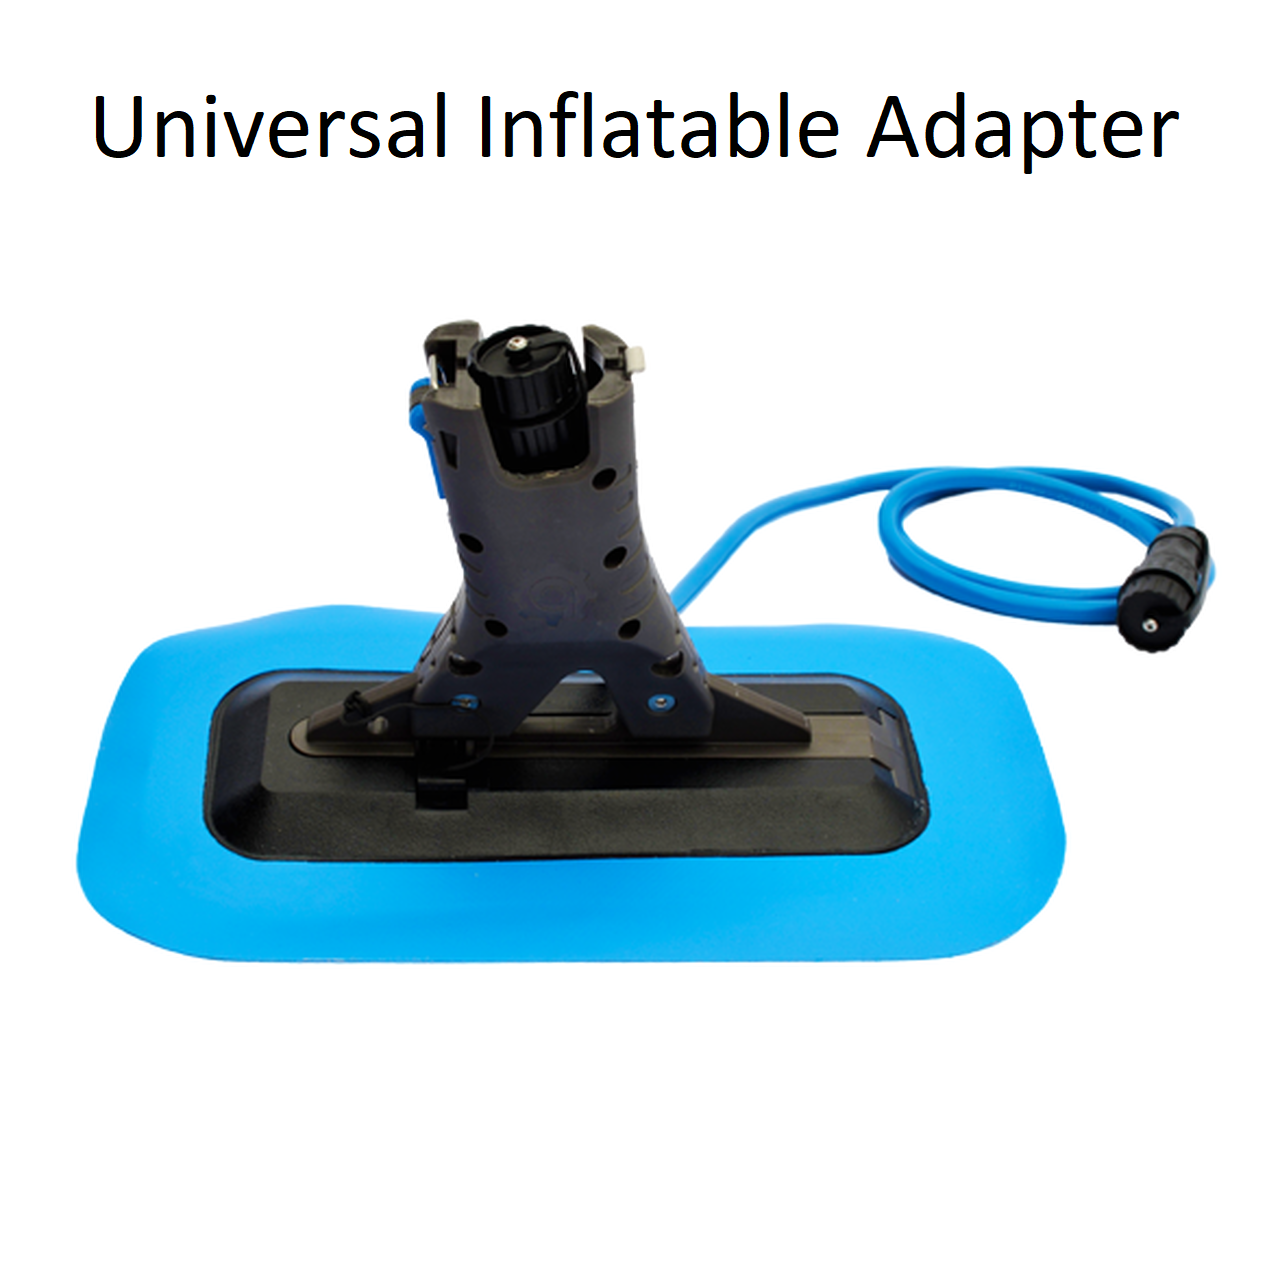 Universal Inflatable Adapter